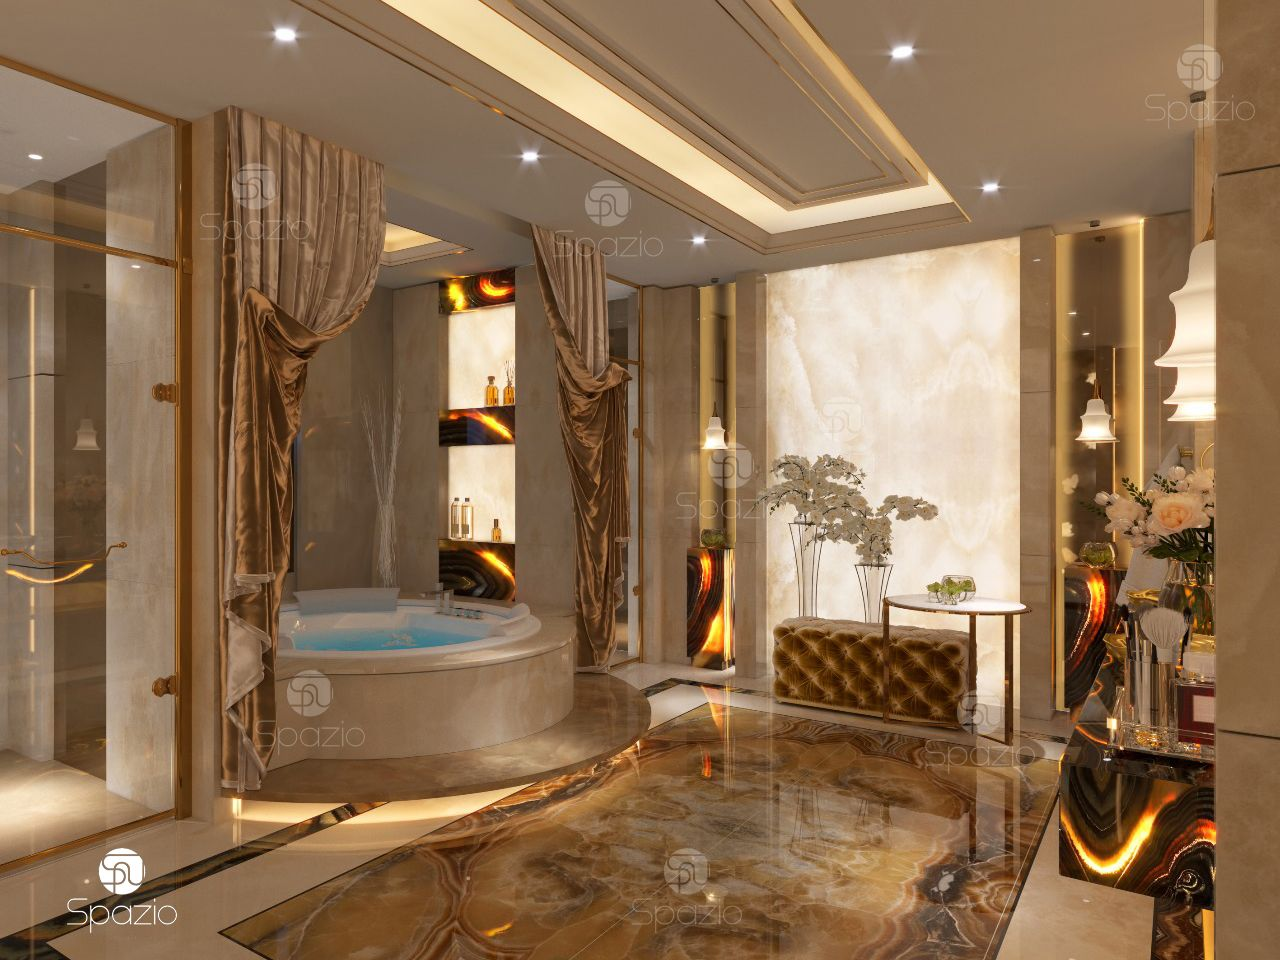 Toilet decoration in luxury style.